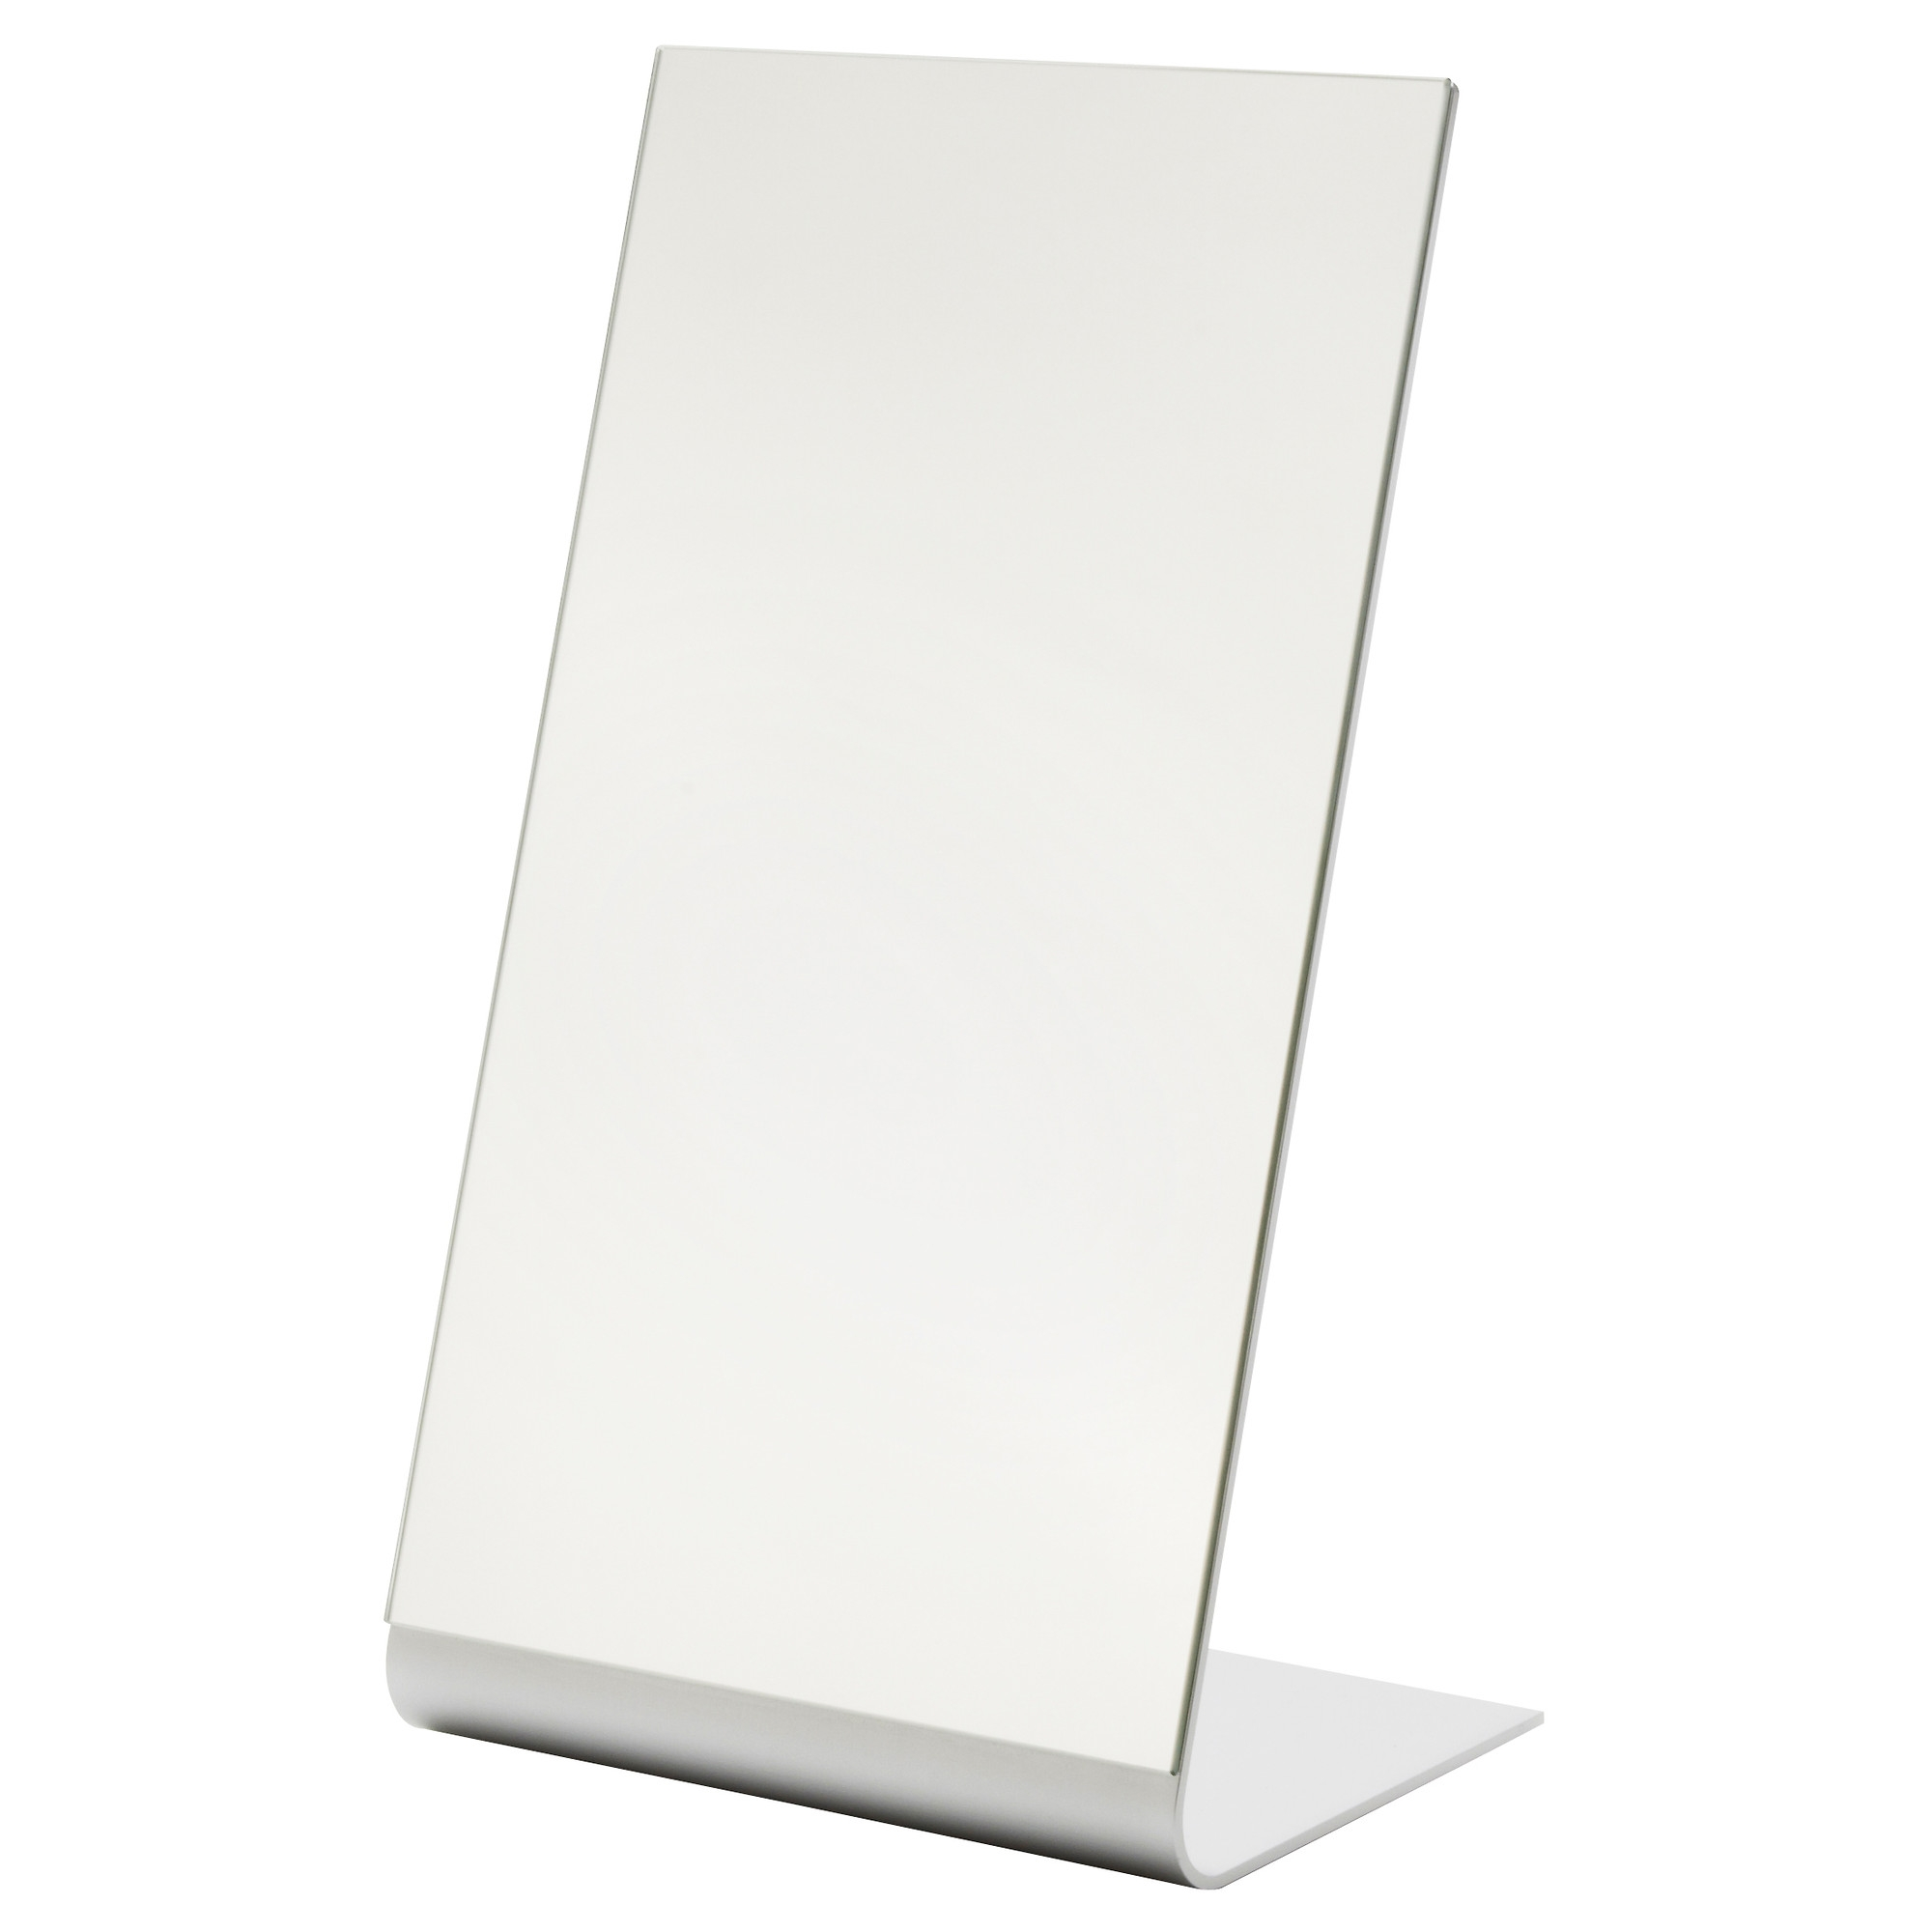 Mirrors Free Standing Mirrors Ikea Inside Mirror On Stand For Dressing Table (Image 10 of 15)